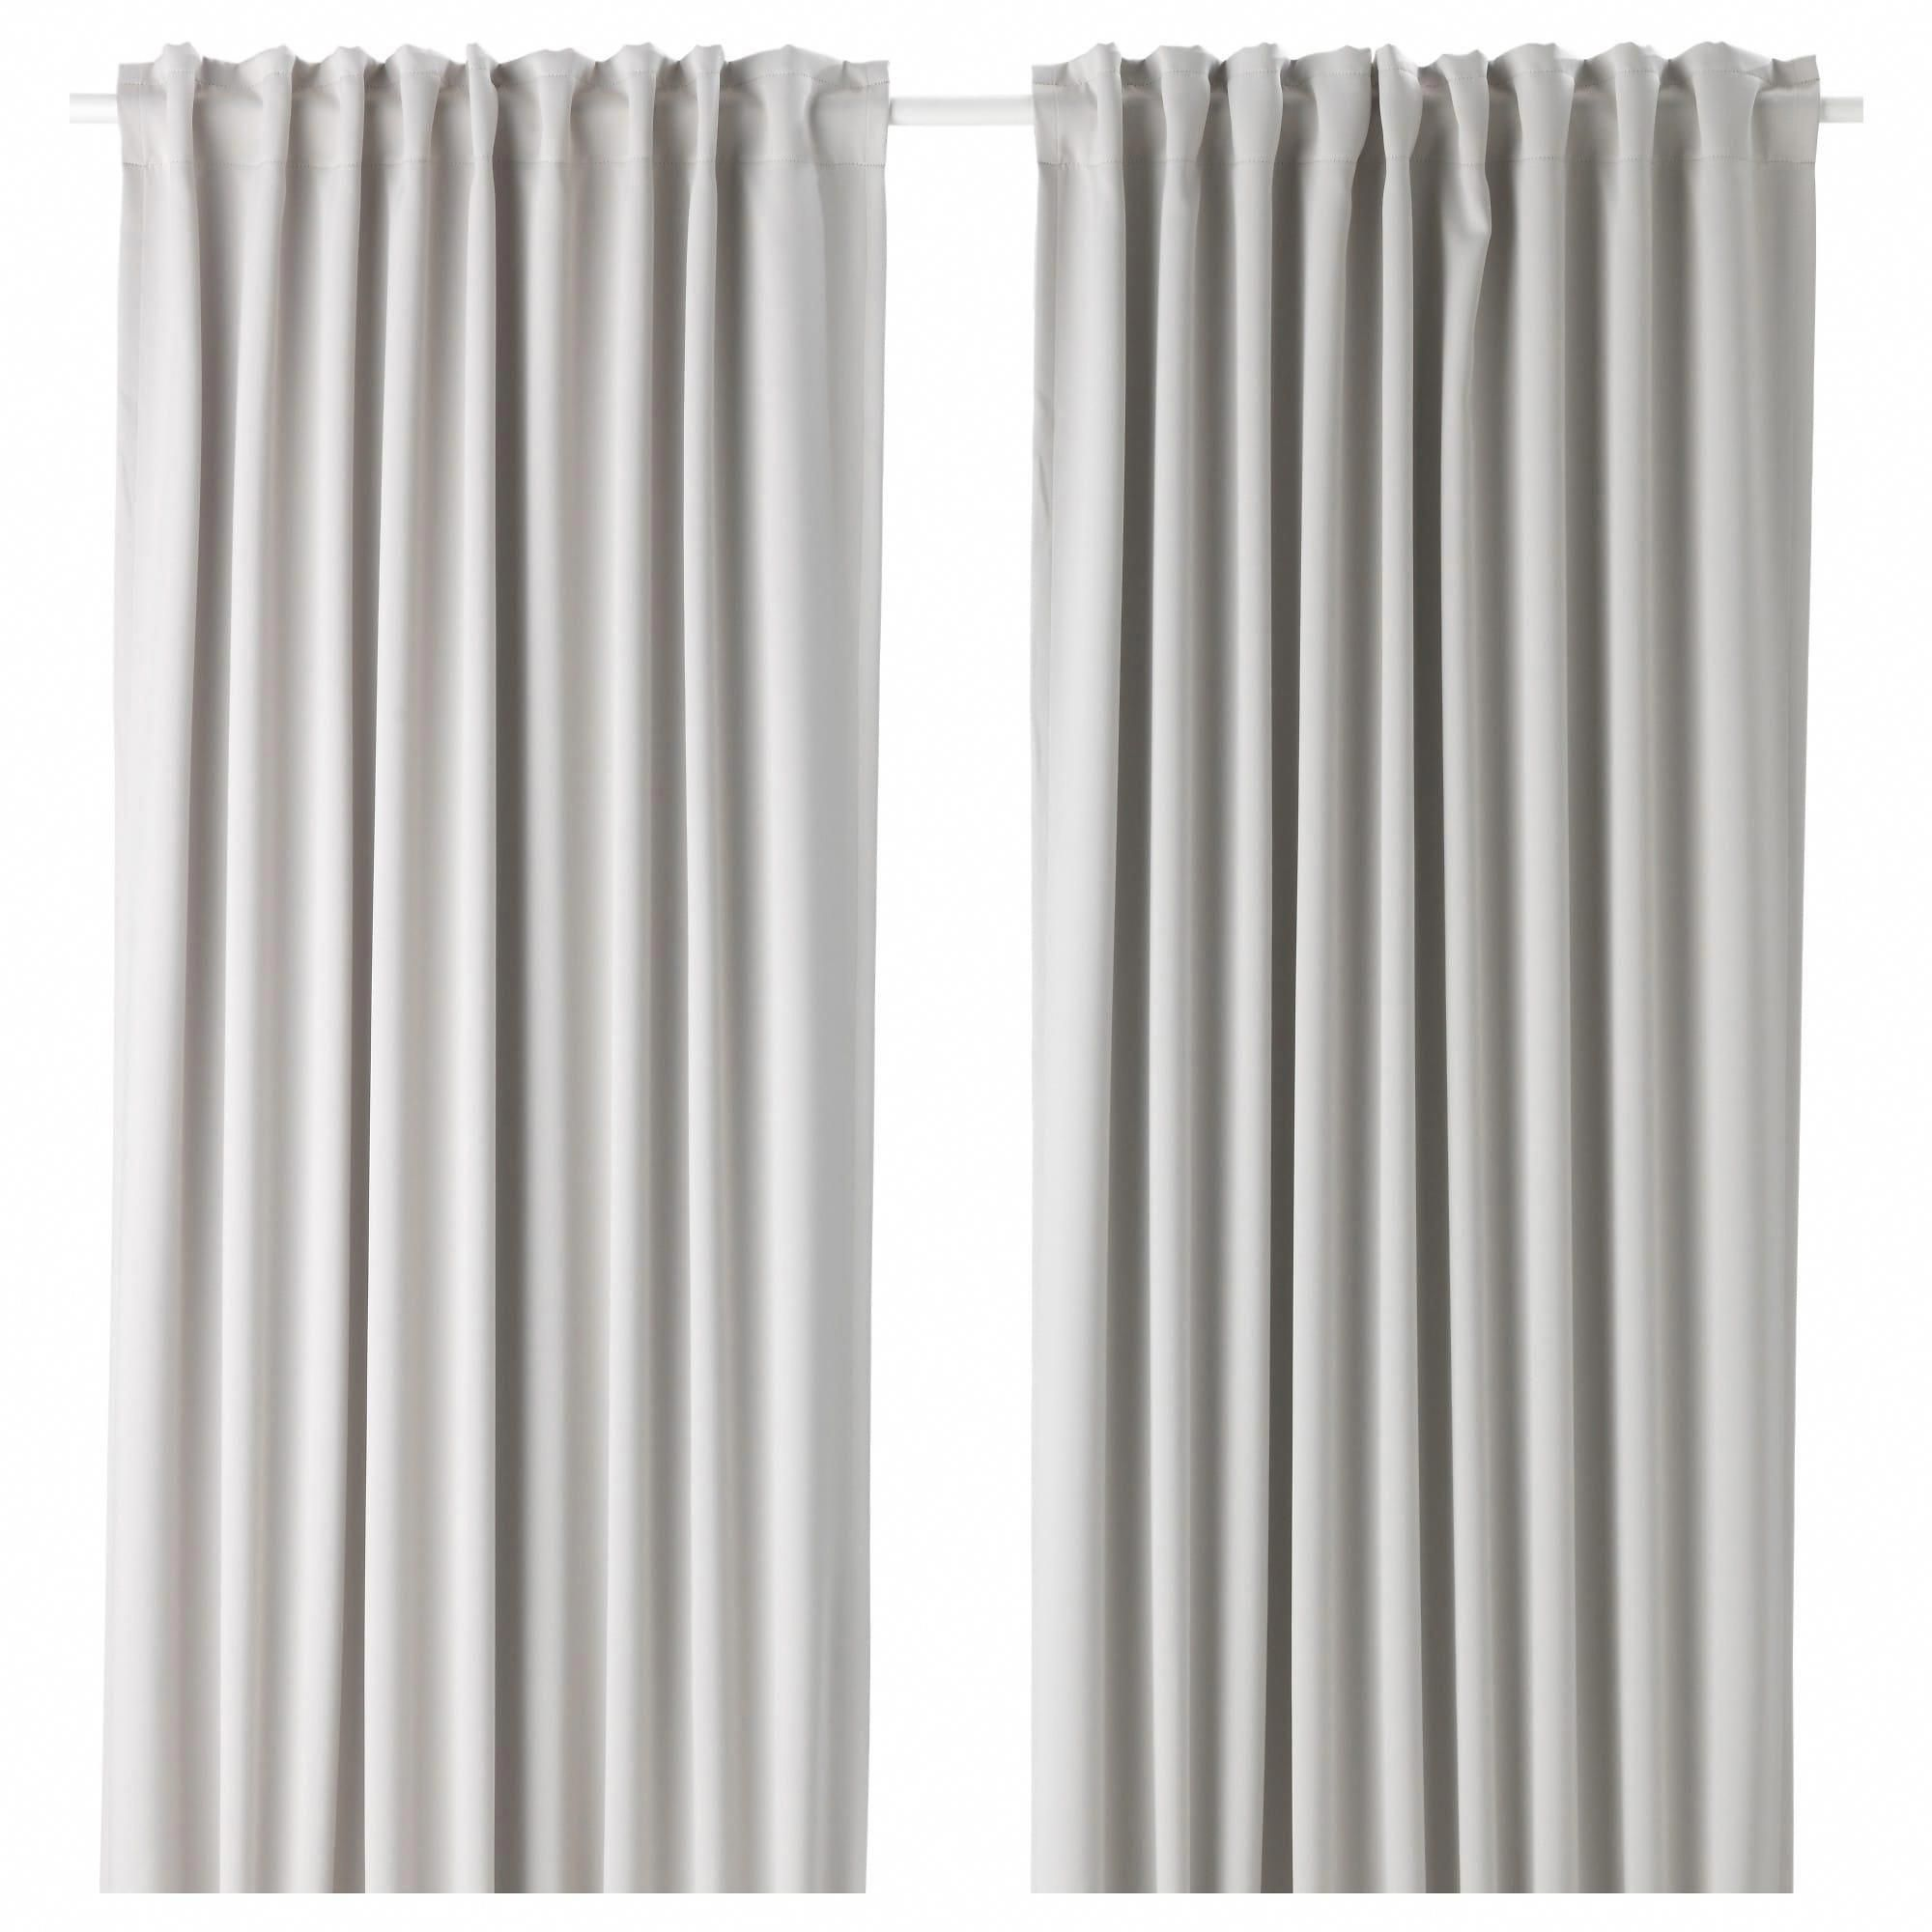 Ikea Majgull Blackout Curtains 1 Pair Light Gray Roomdarkeningideas Blackoutcurtainsforbedroom Block Out Curtains Room Darkening Curtains Cool Curtains